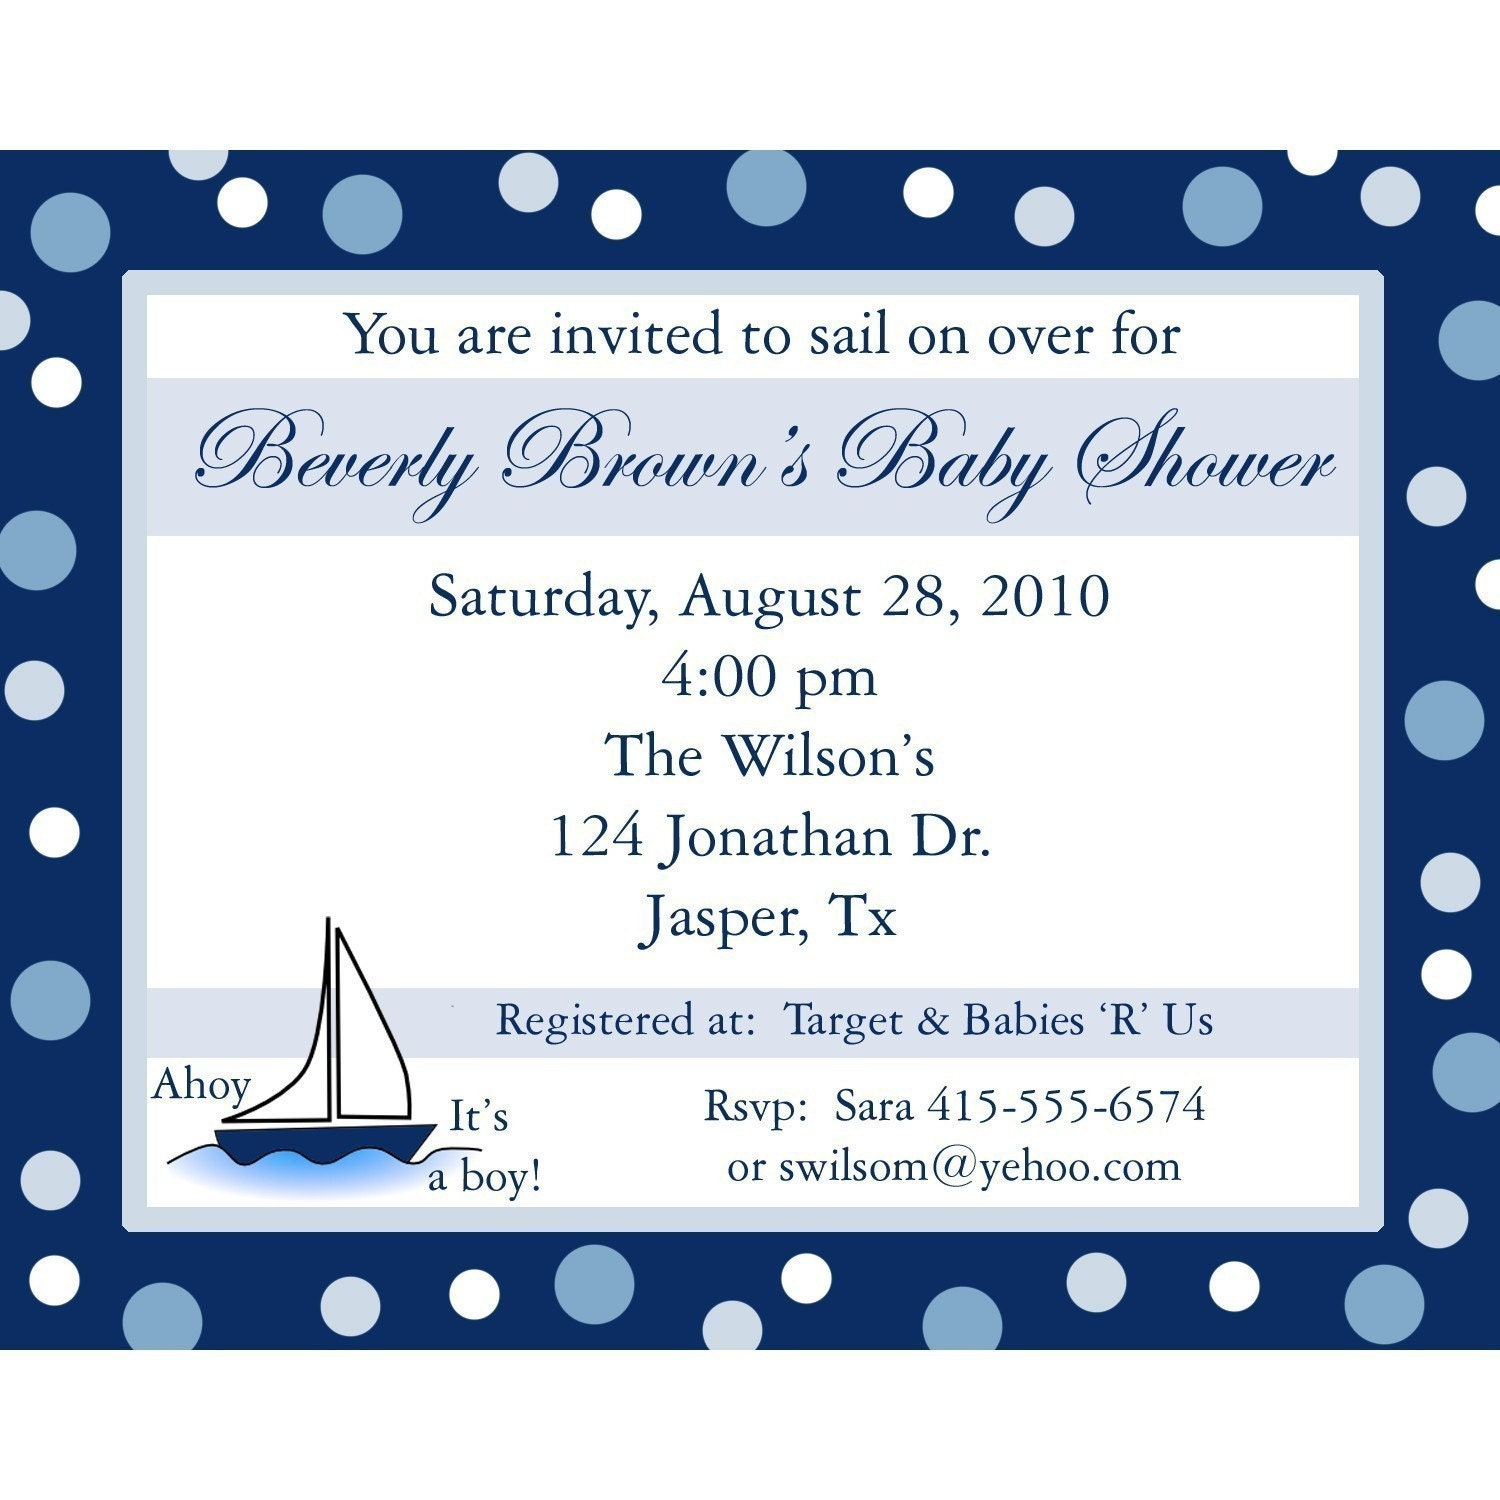 20 personalized baby shower invitations ahoy its a boy